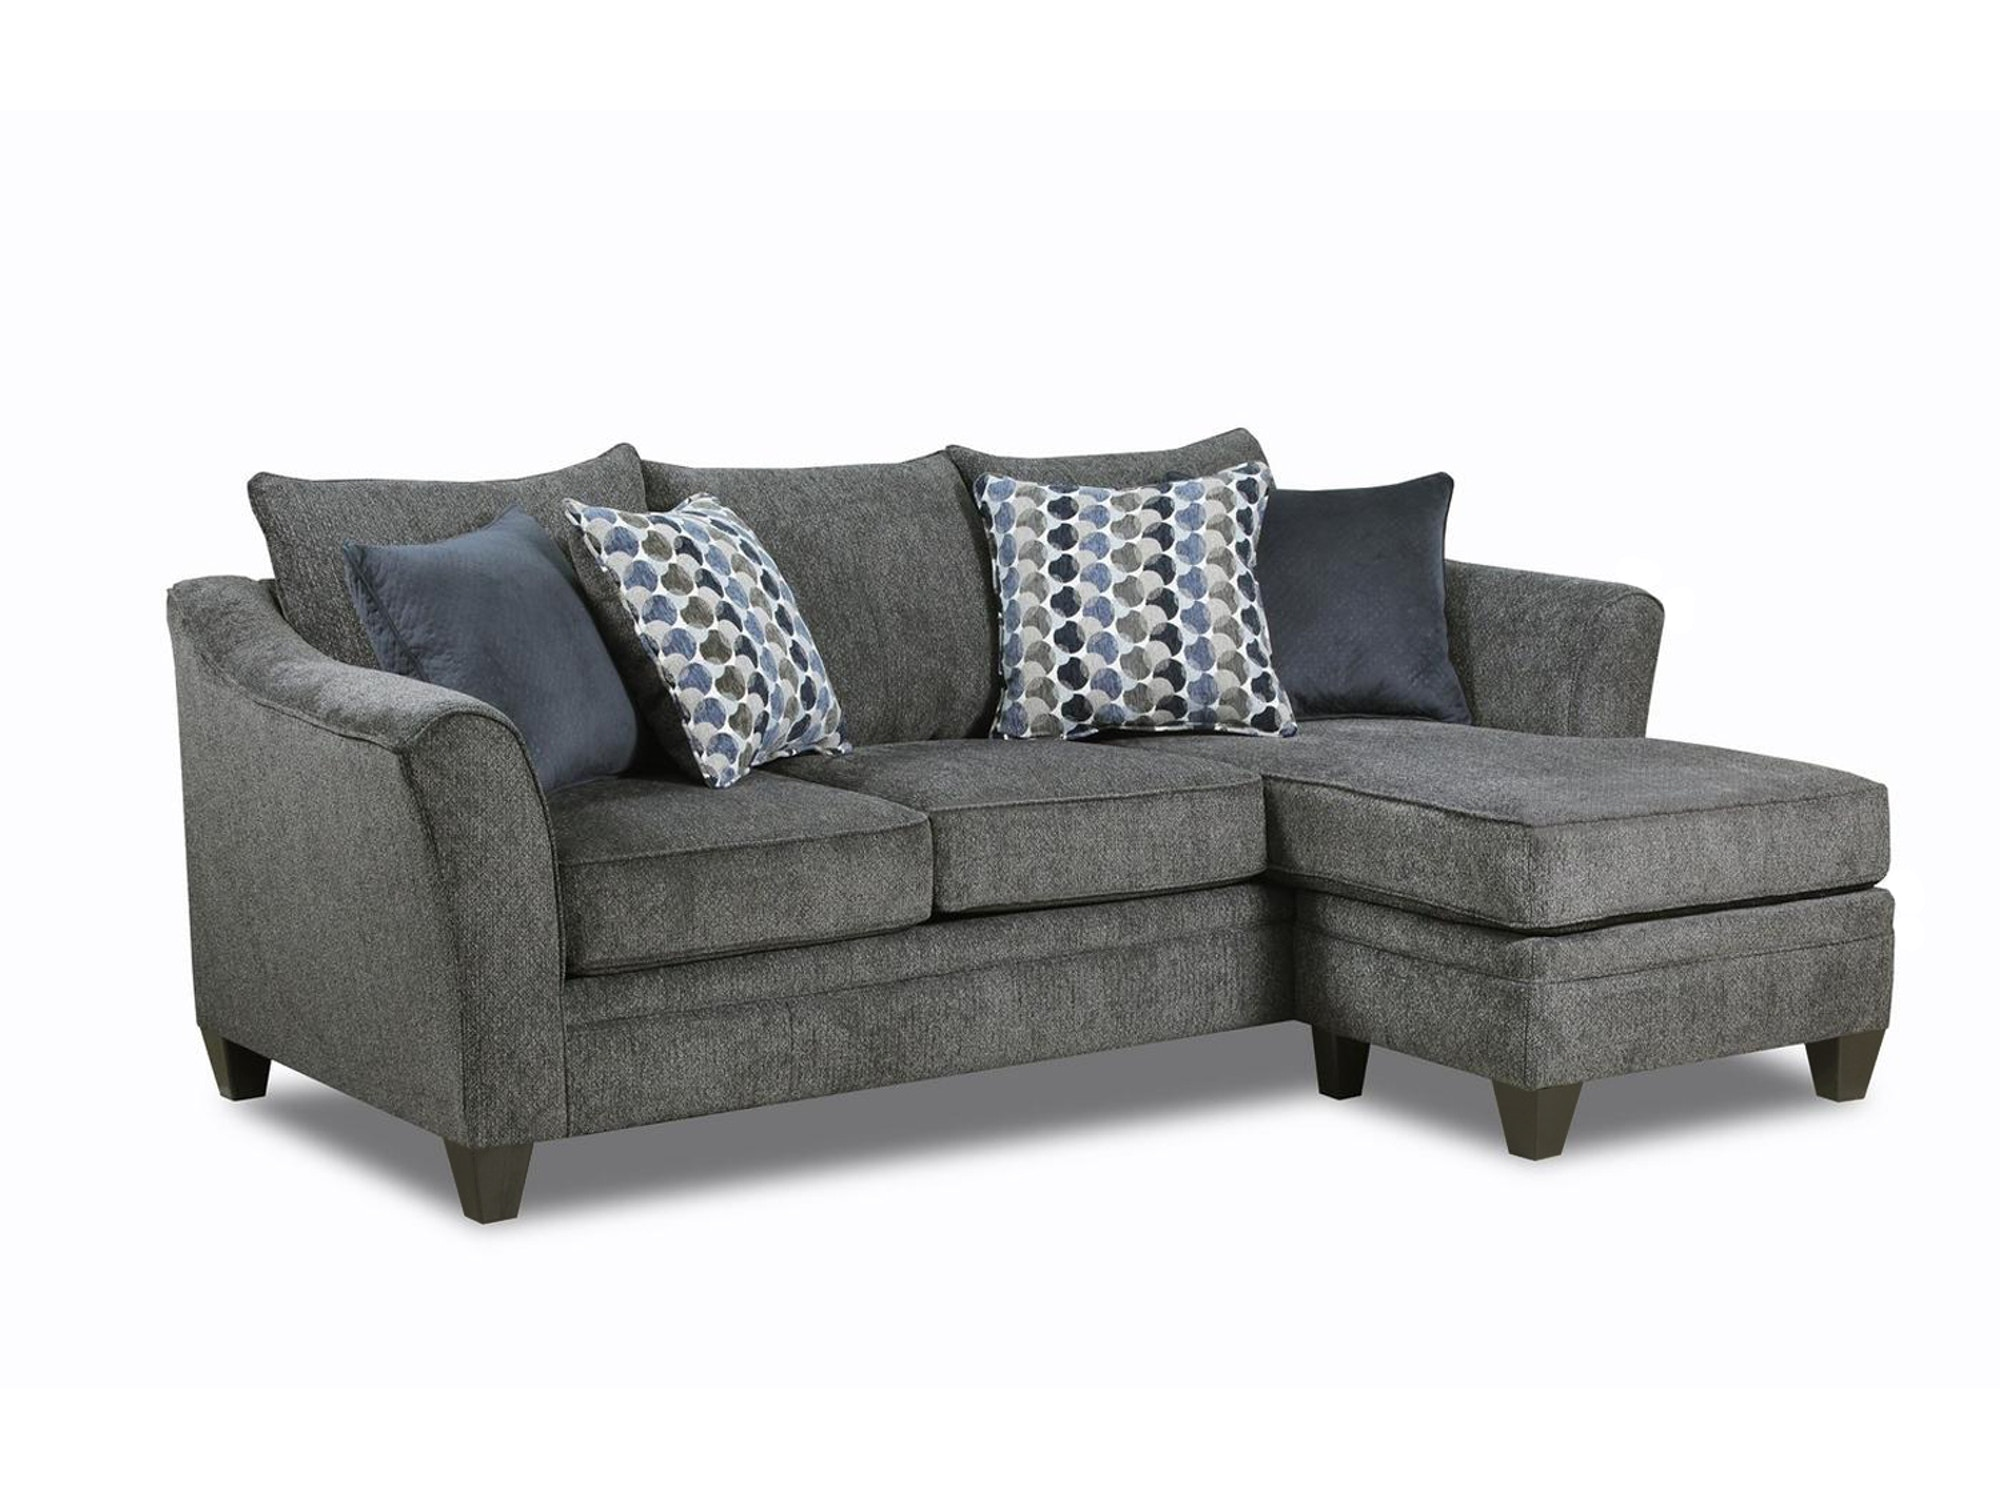 Simmons upholstery furniture furniture fair cincinnati for Albany saturn sectional sofa chaise